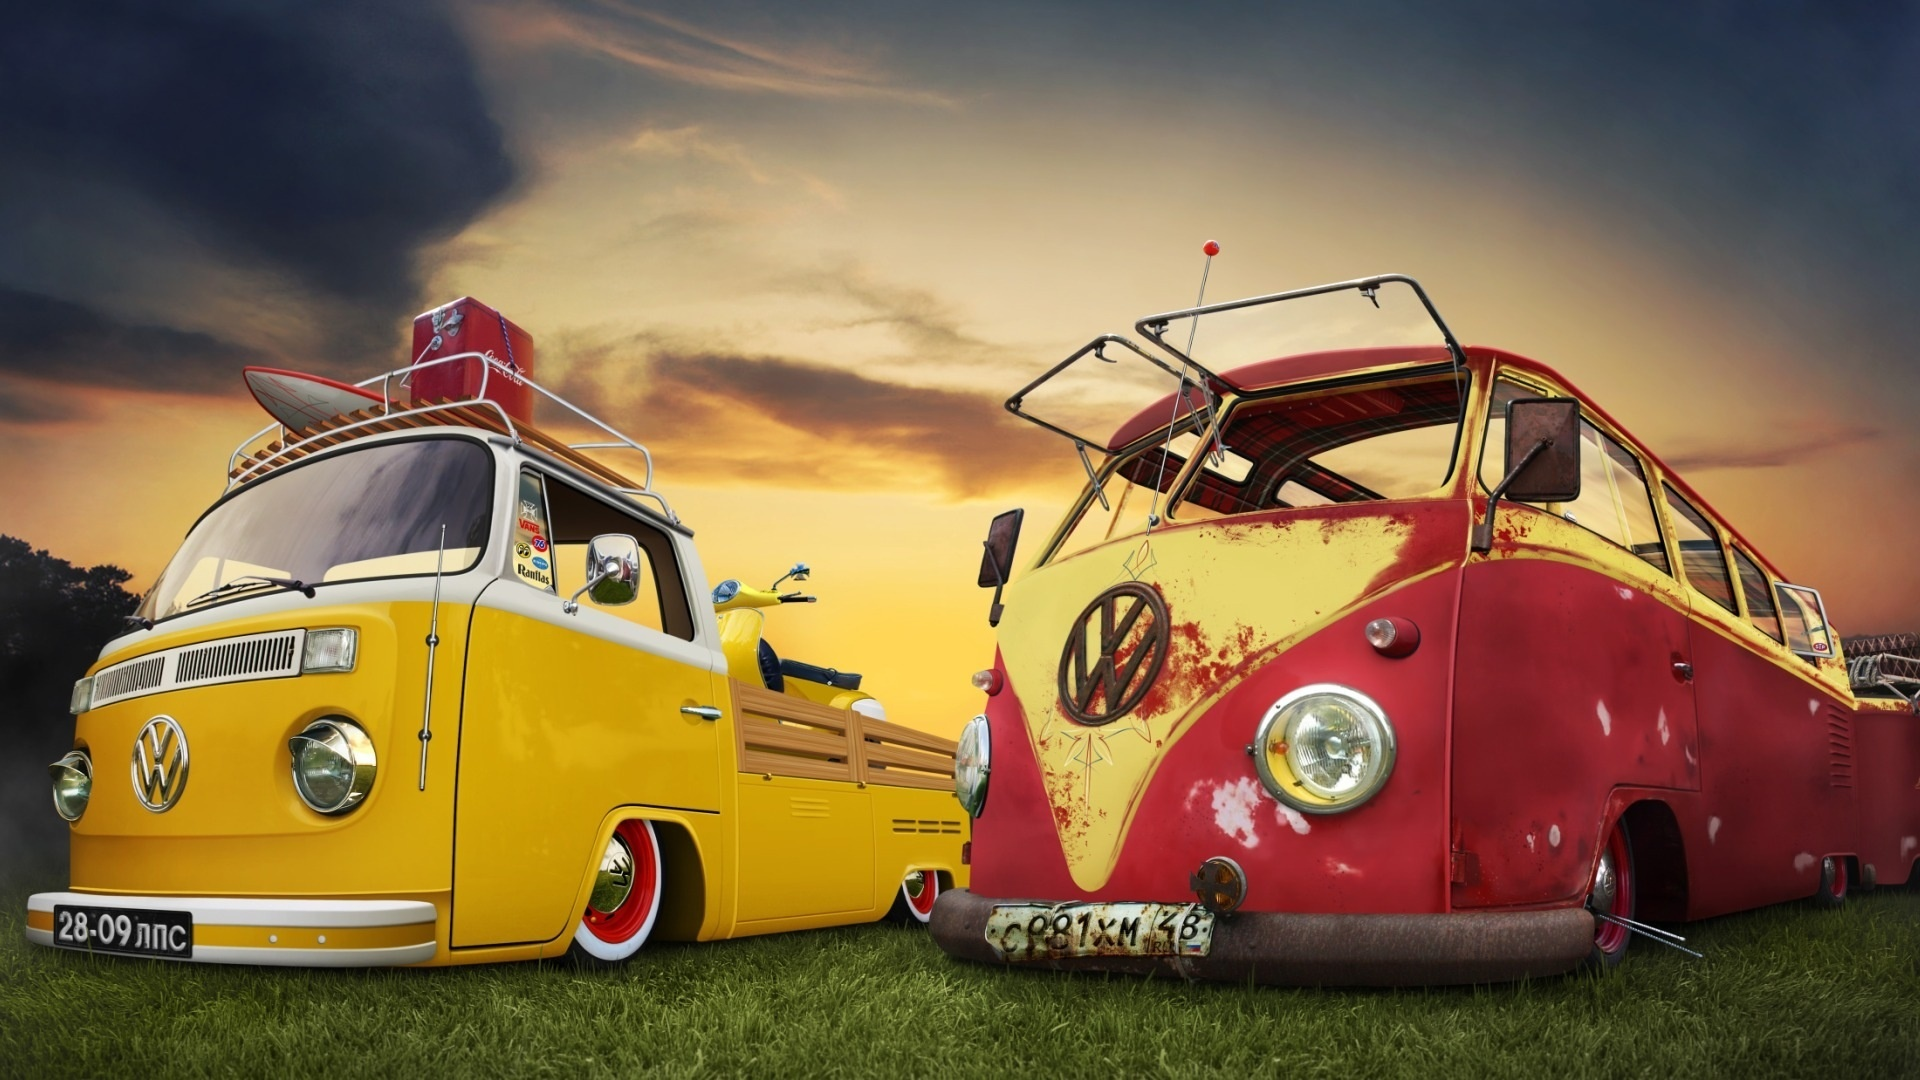 [50+] Campervan Wallpaper On WallpaperSafari